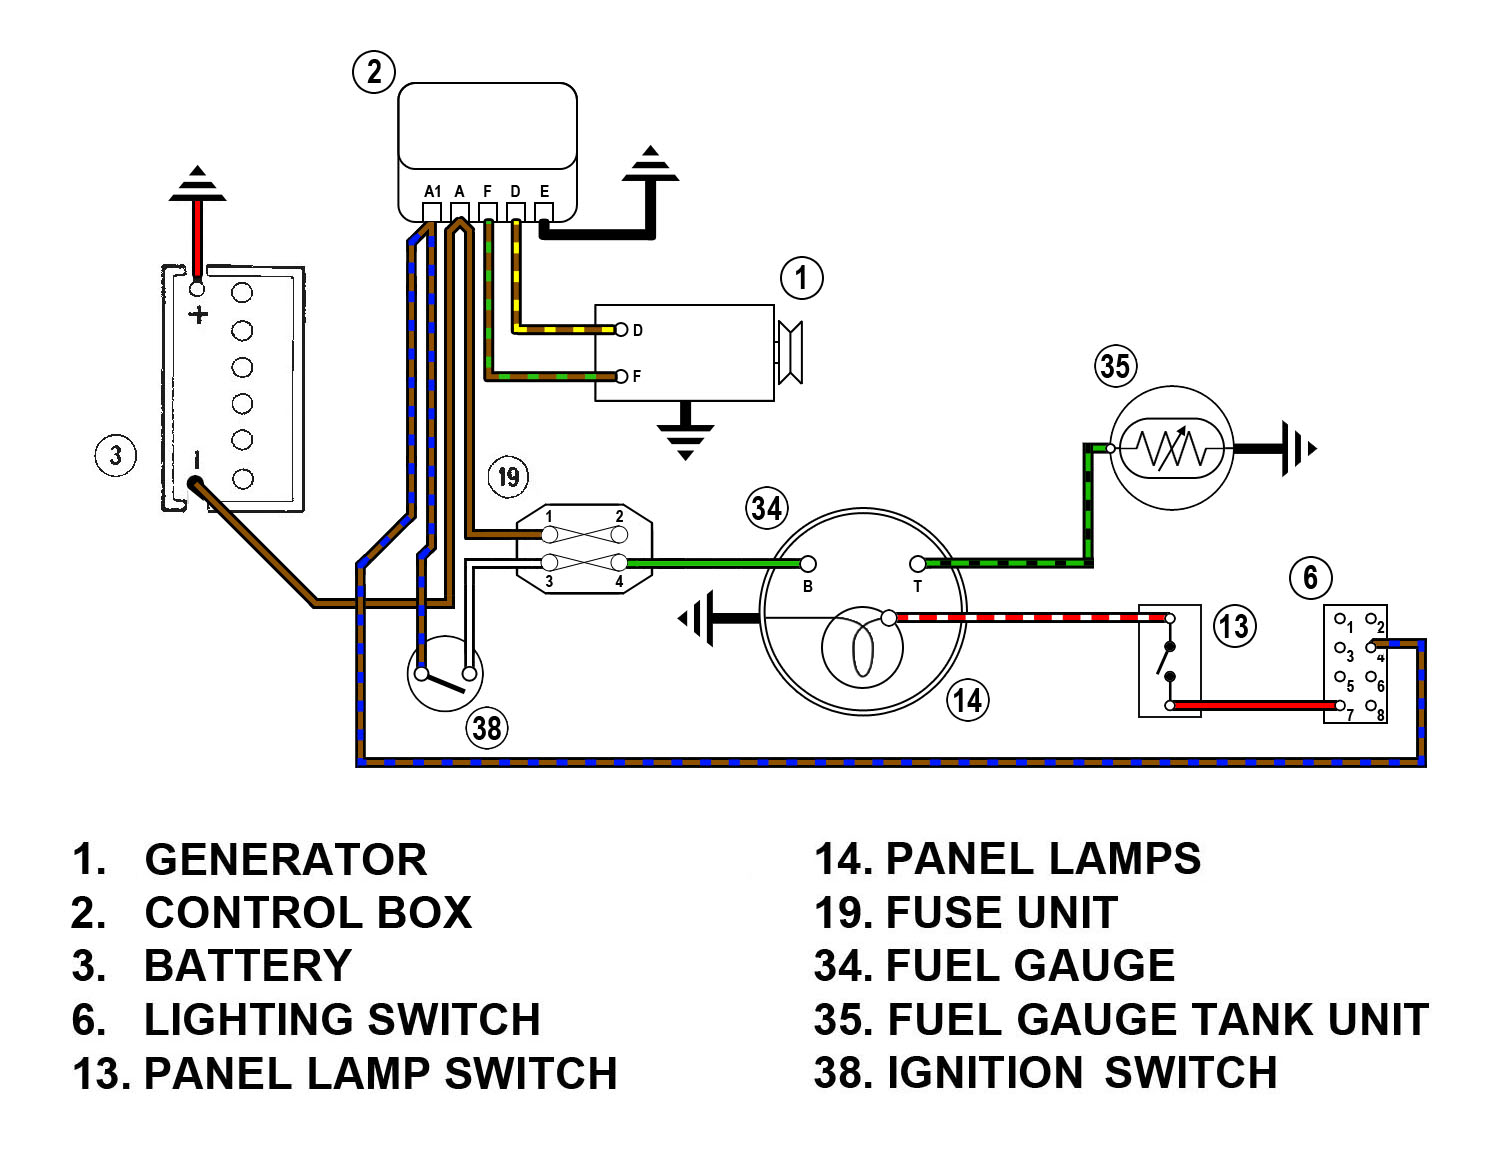 FuelGaugeWiringSpMkII_MGMkI gas gauge wiring diagram 1980 cj7 wiring diagram gas gauge \u2022 free autometer fuel level gauge wiring diagram at gsmx.co